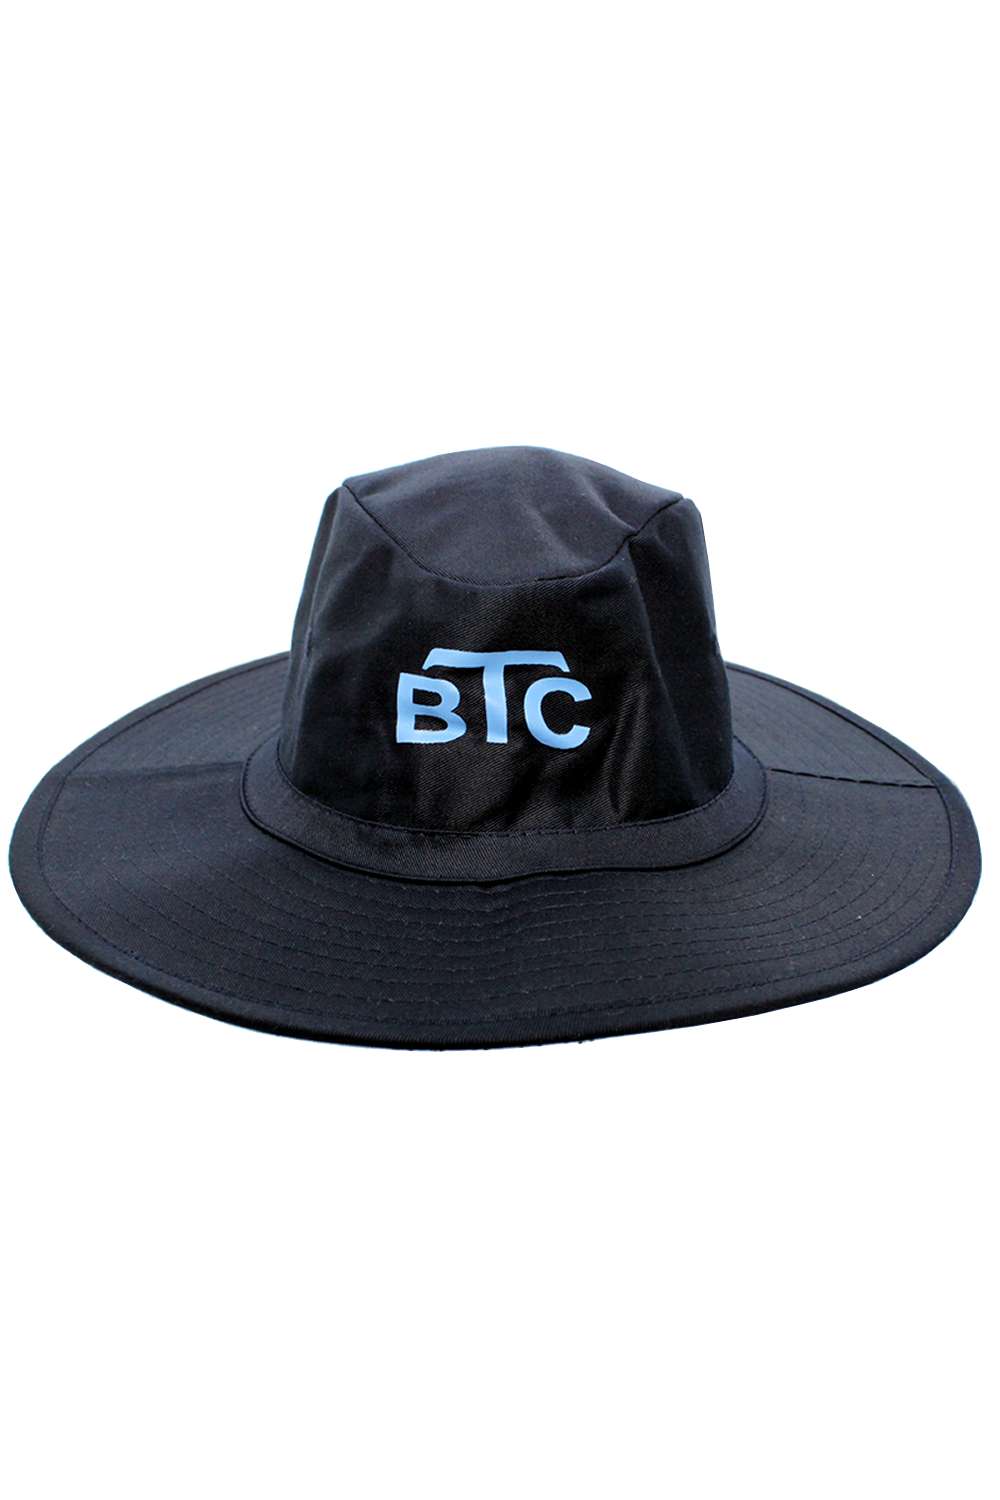 BTC Day Hat